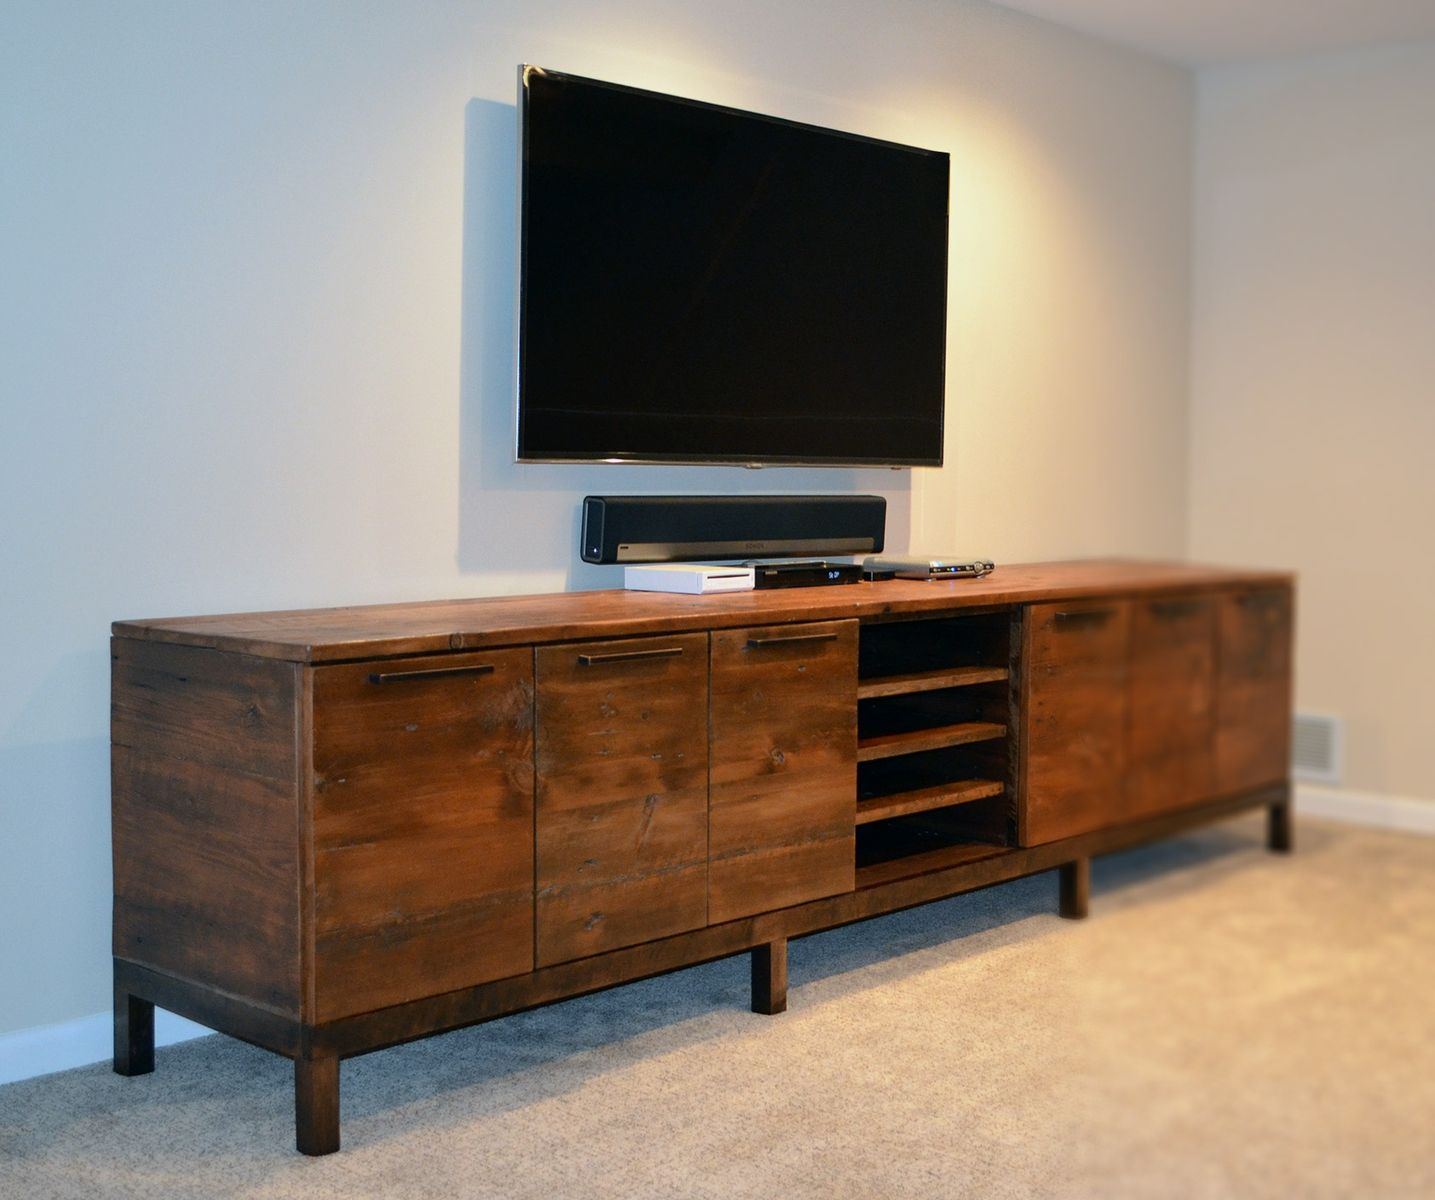 Rustic Tv Stand Wood Center Storage Console Ta Hawke Media Center Tv Cabinet Ikea Hide Away C